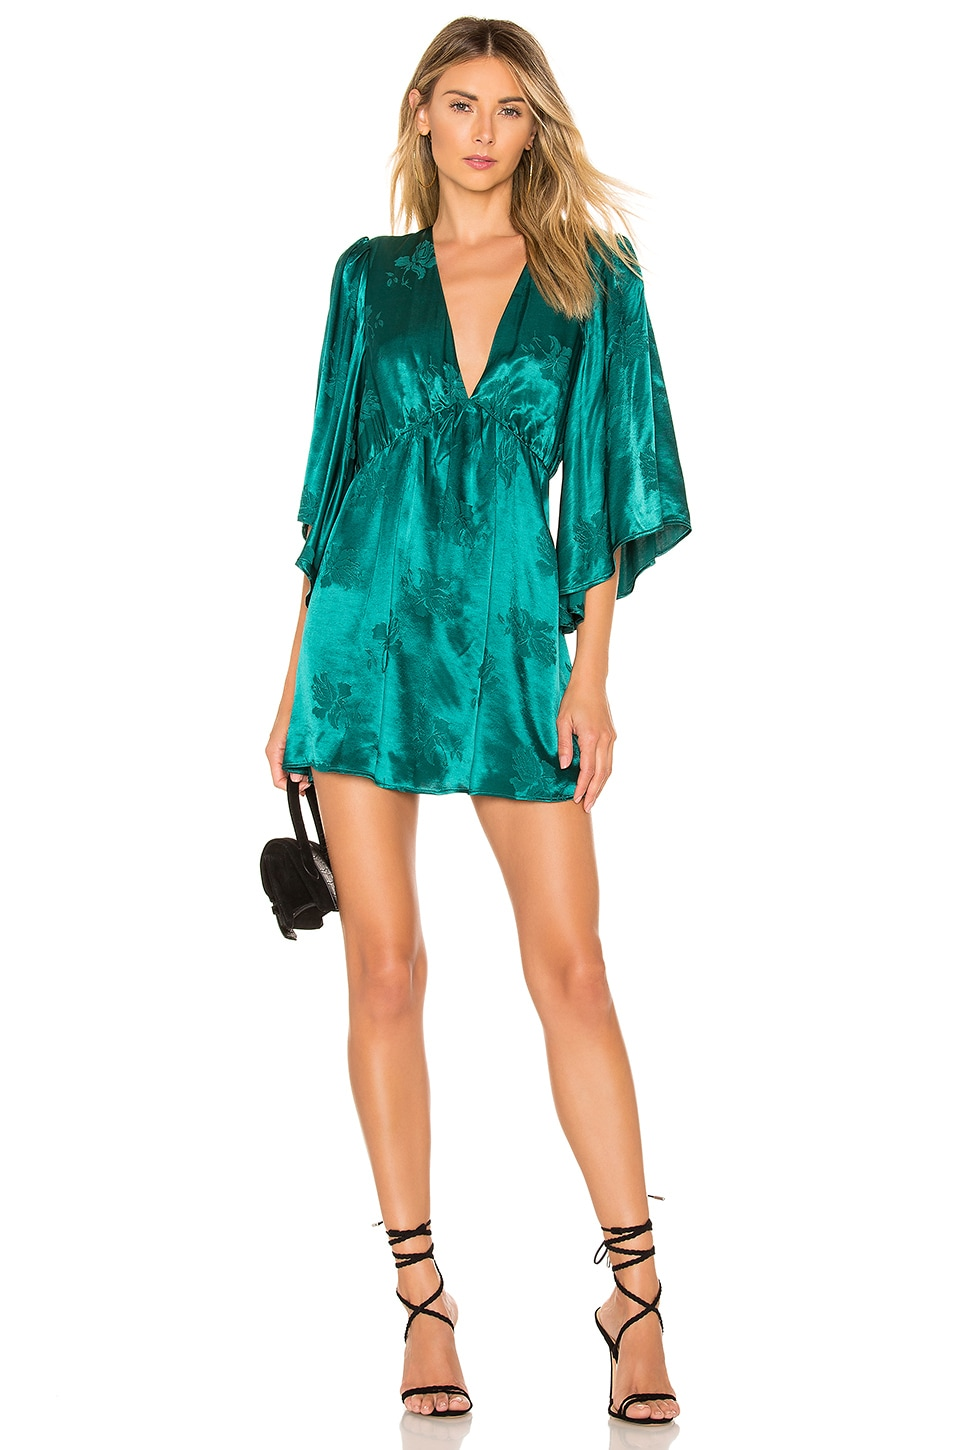 Lovers + Friends Jimmy Mini Dress in Turquoise